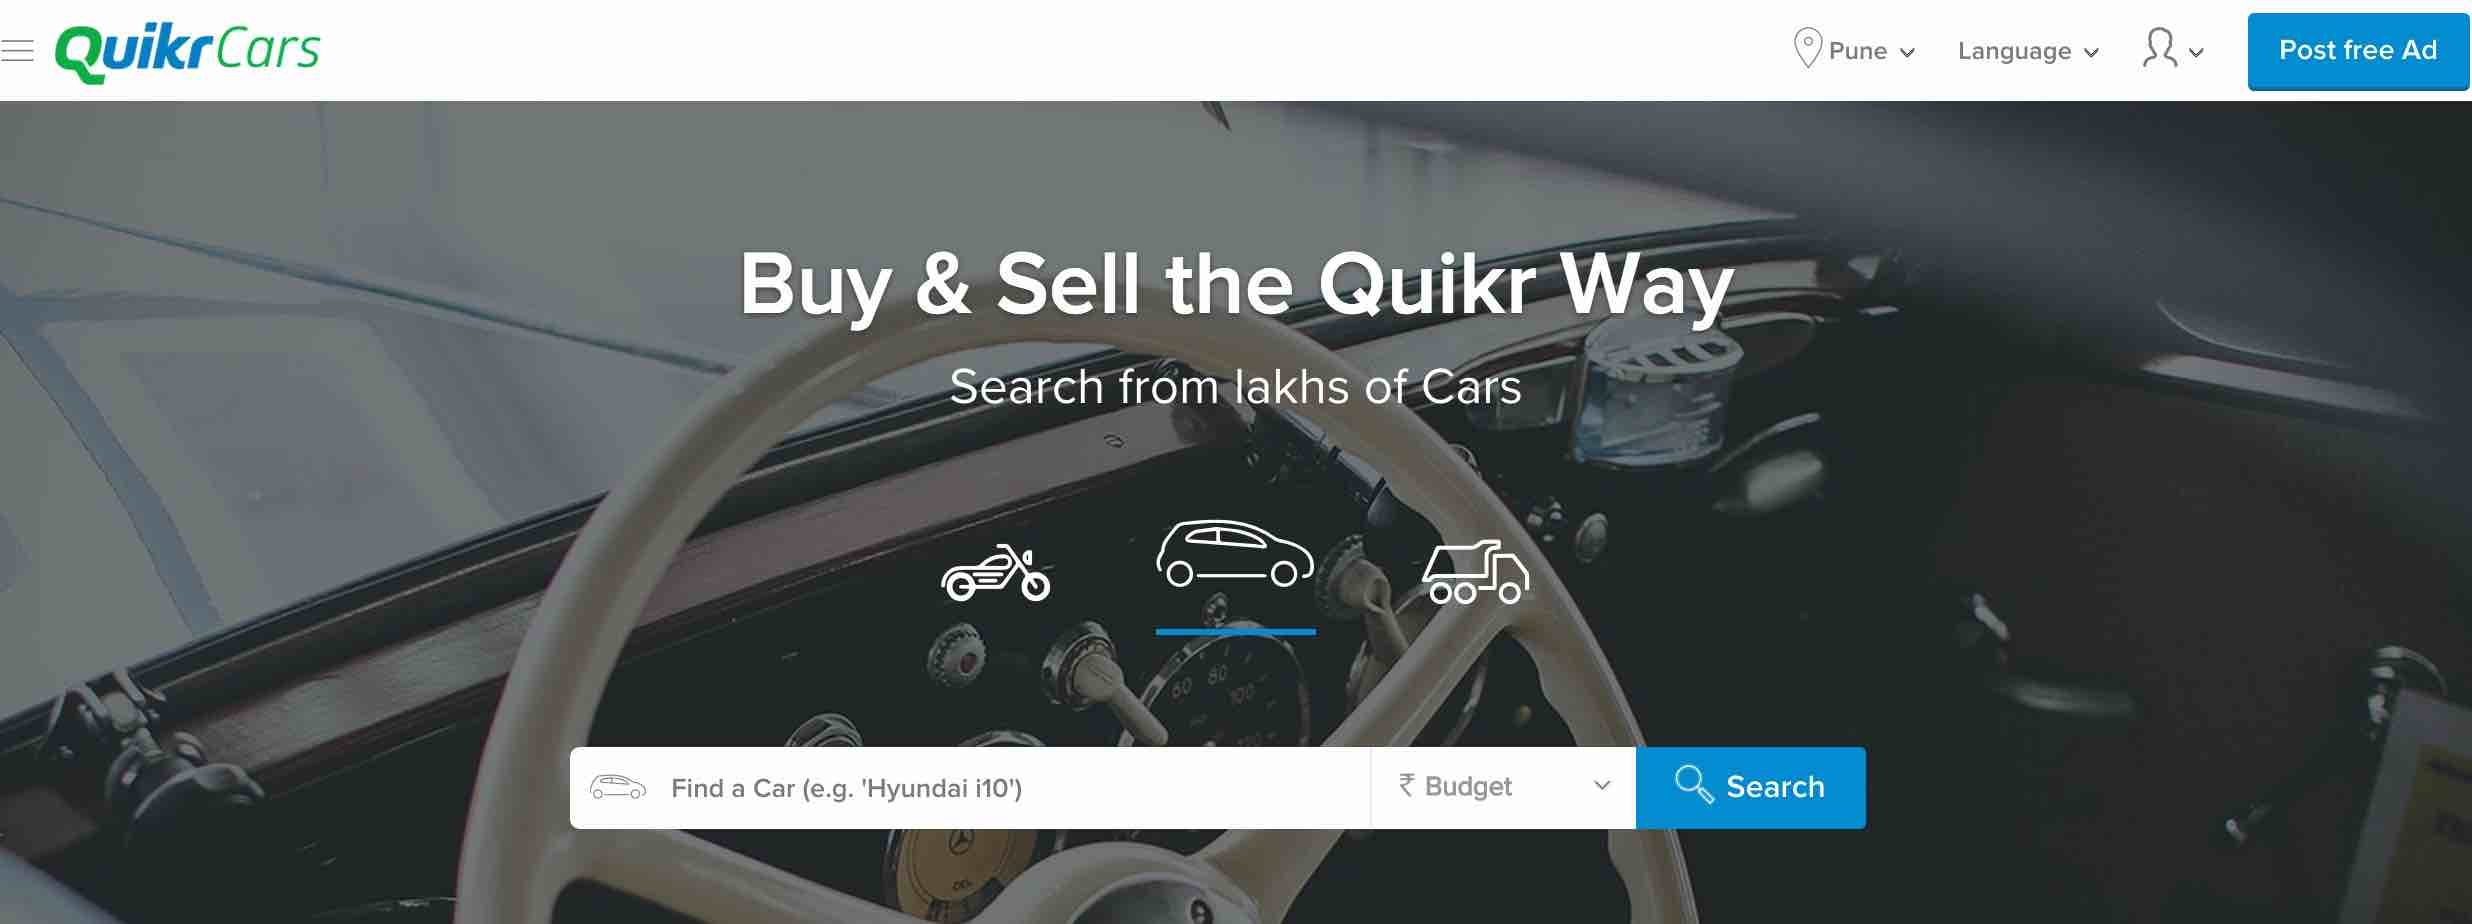 quikrcars